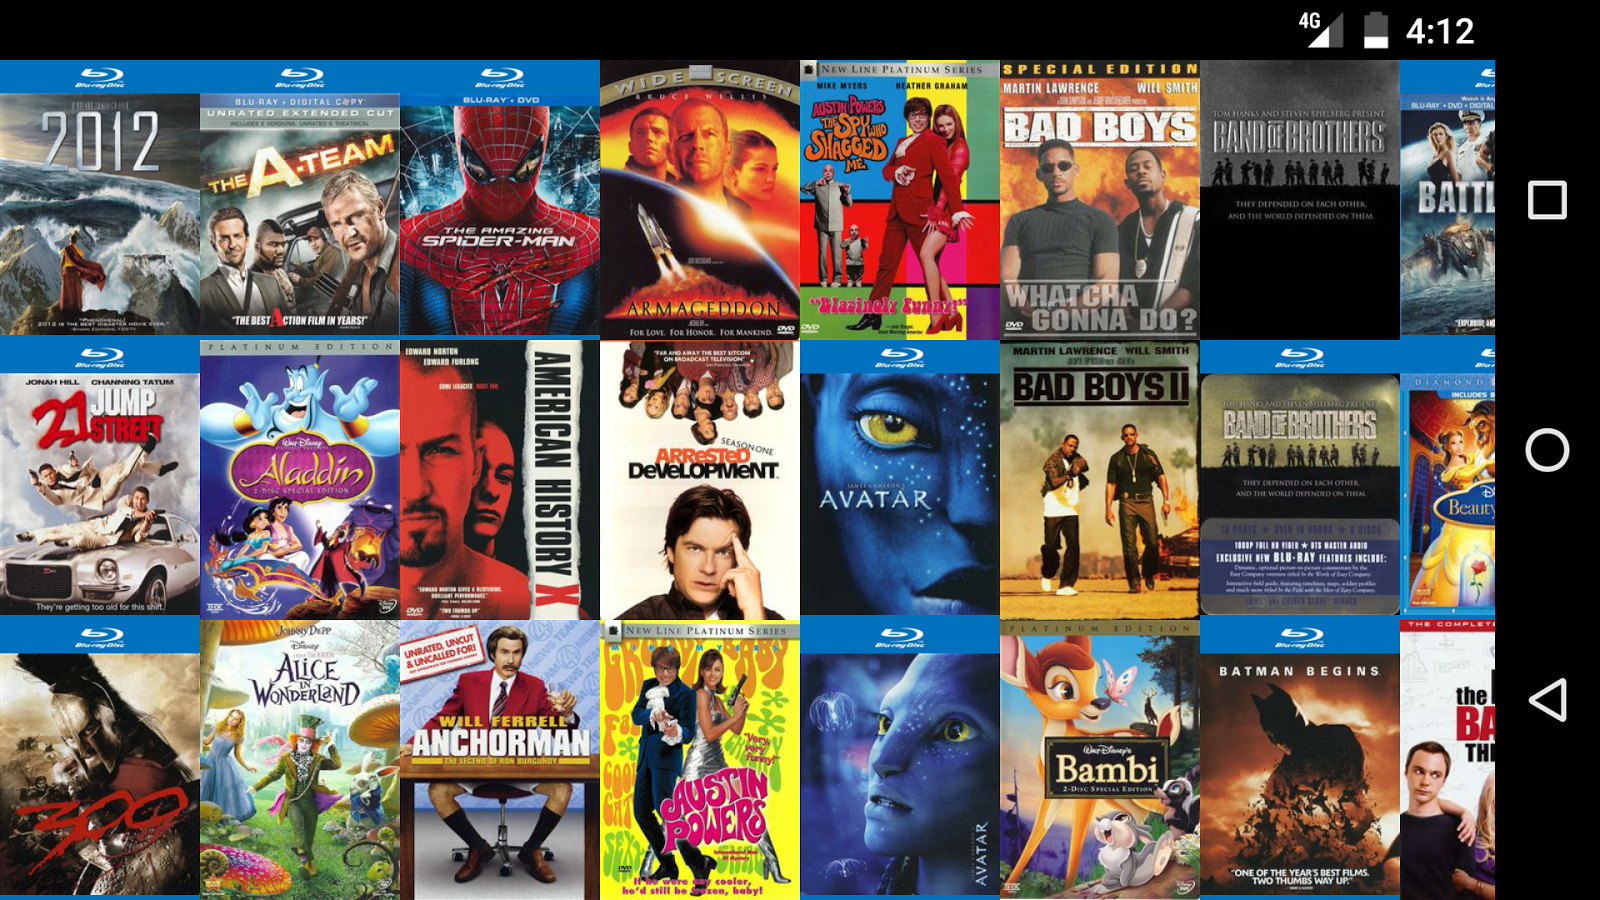 My Movies Pro - Movie & TV Collection Library Screenshot 2